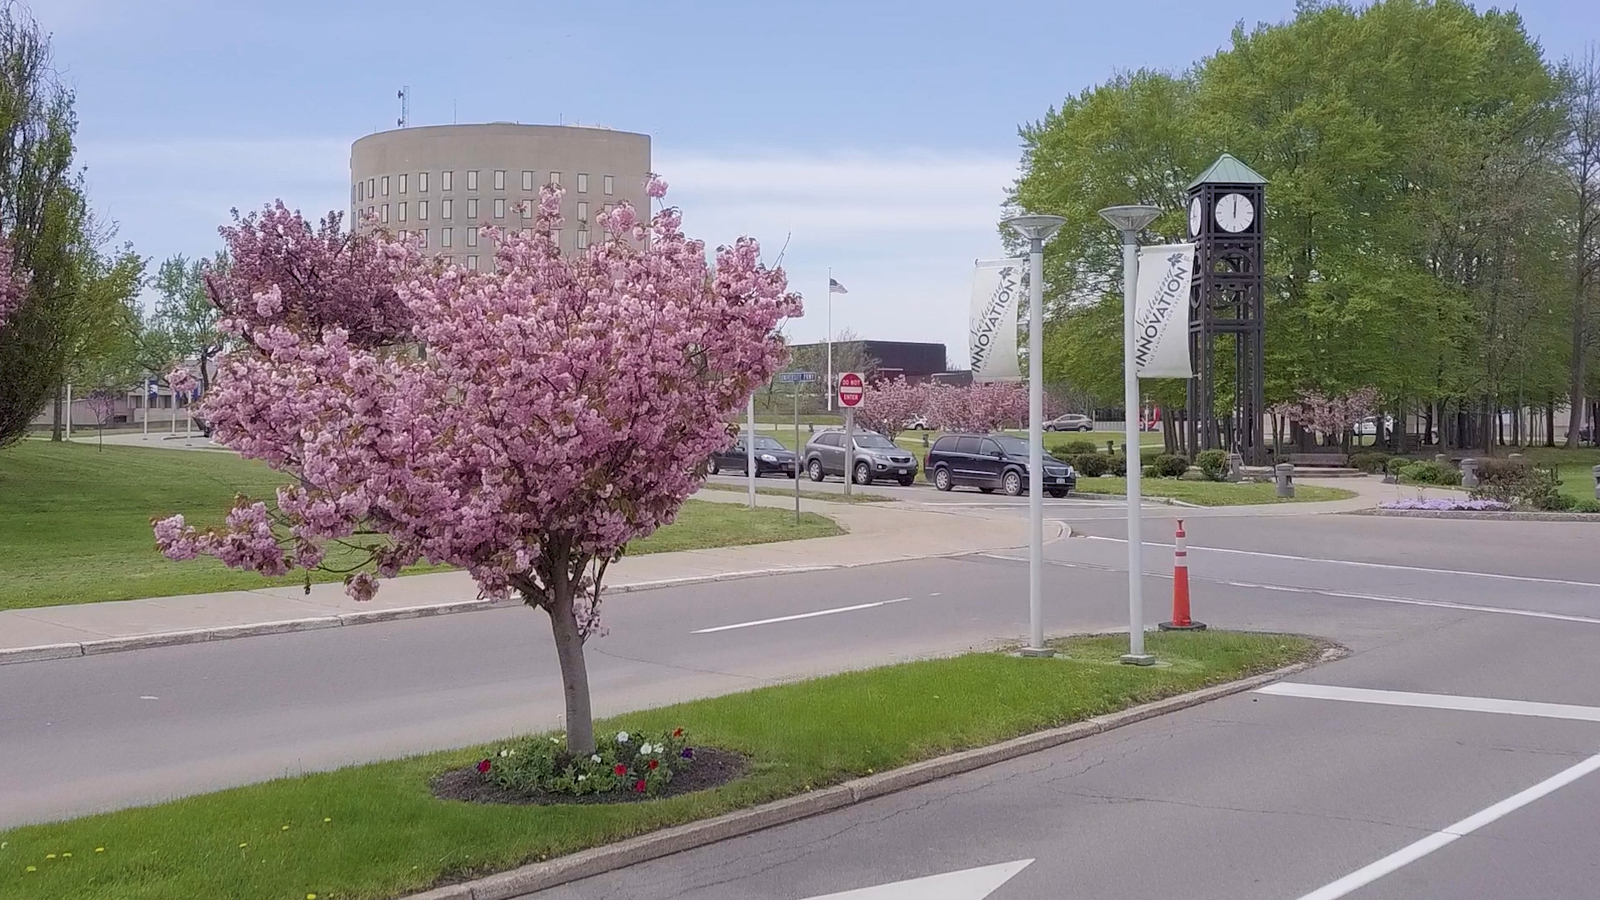 Campus entrance with cherry blossom